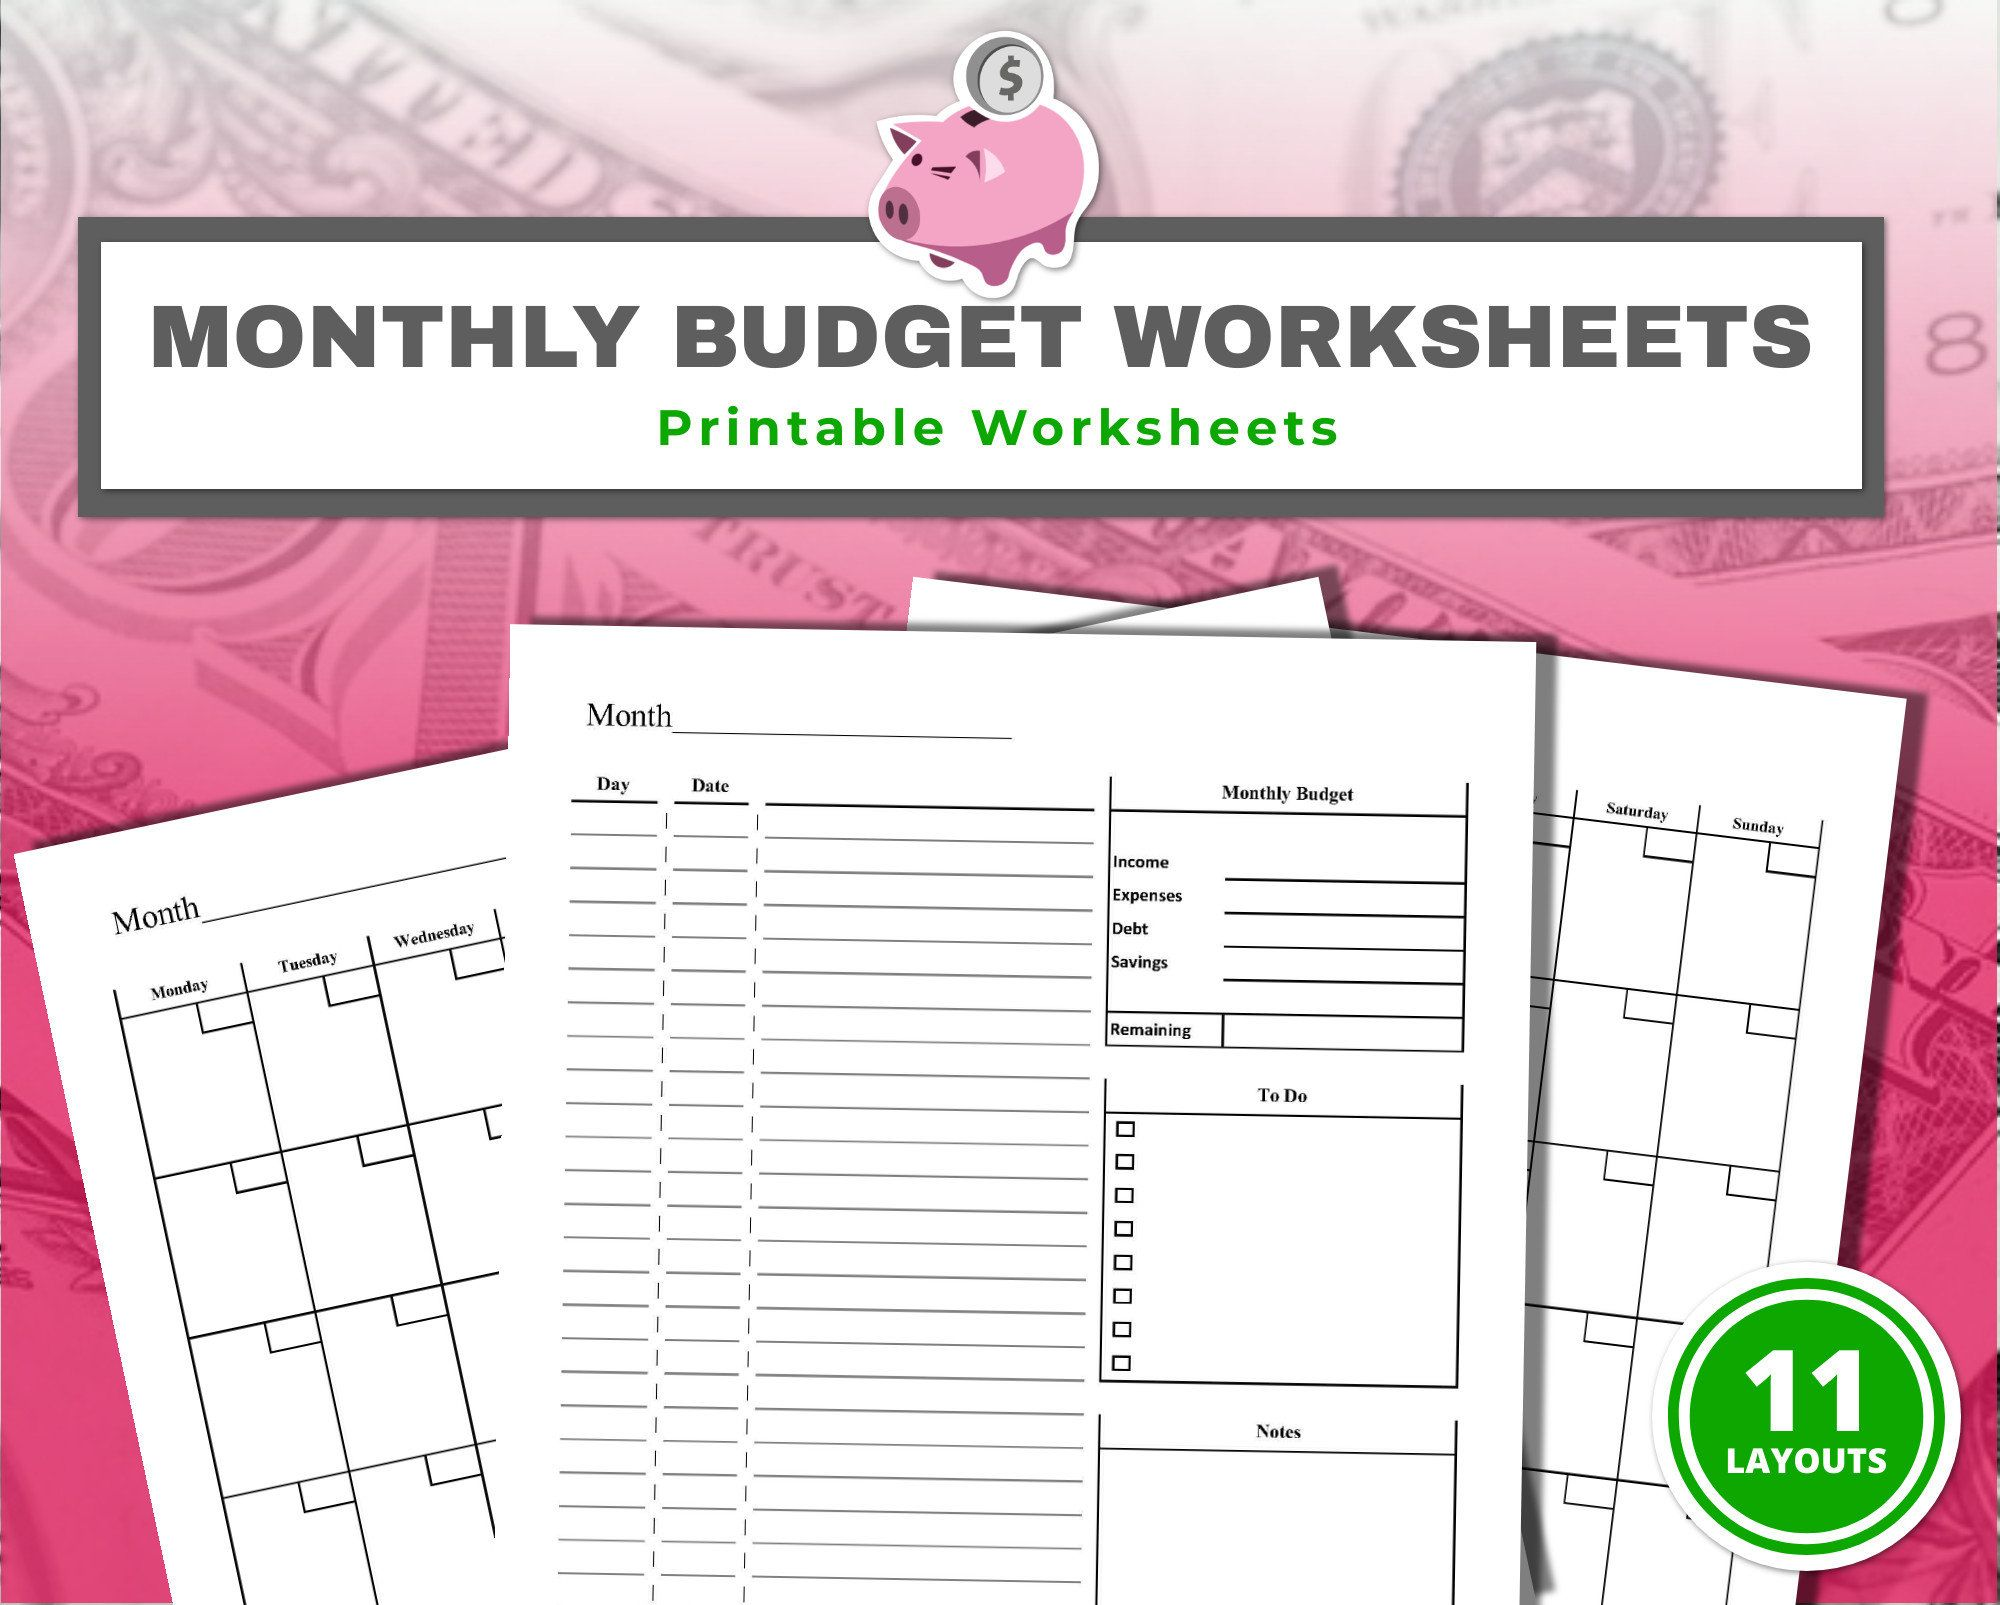 Monthly Budget Printable Worksheets 11 S Printable